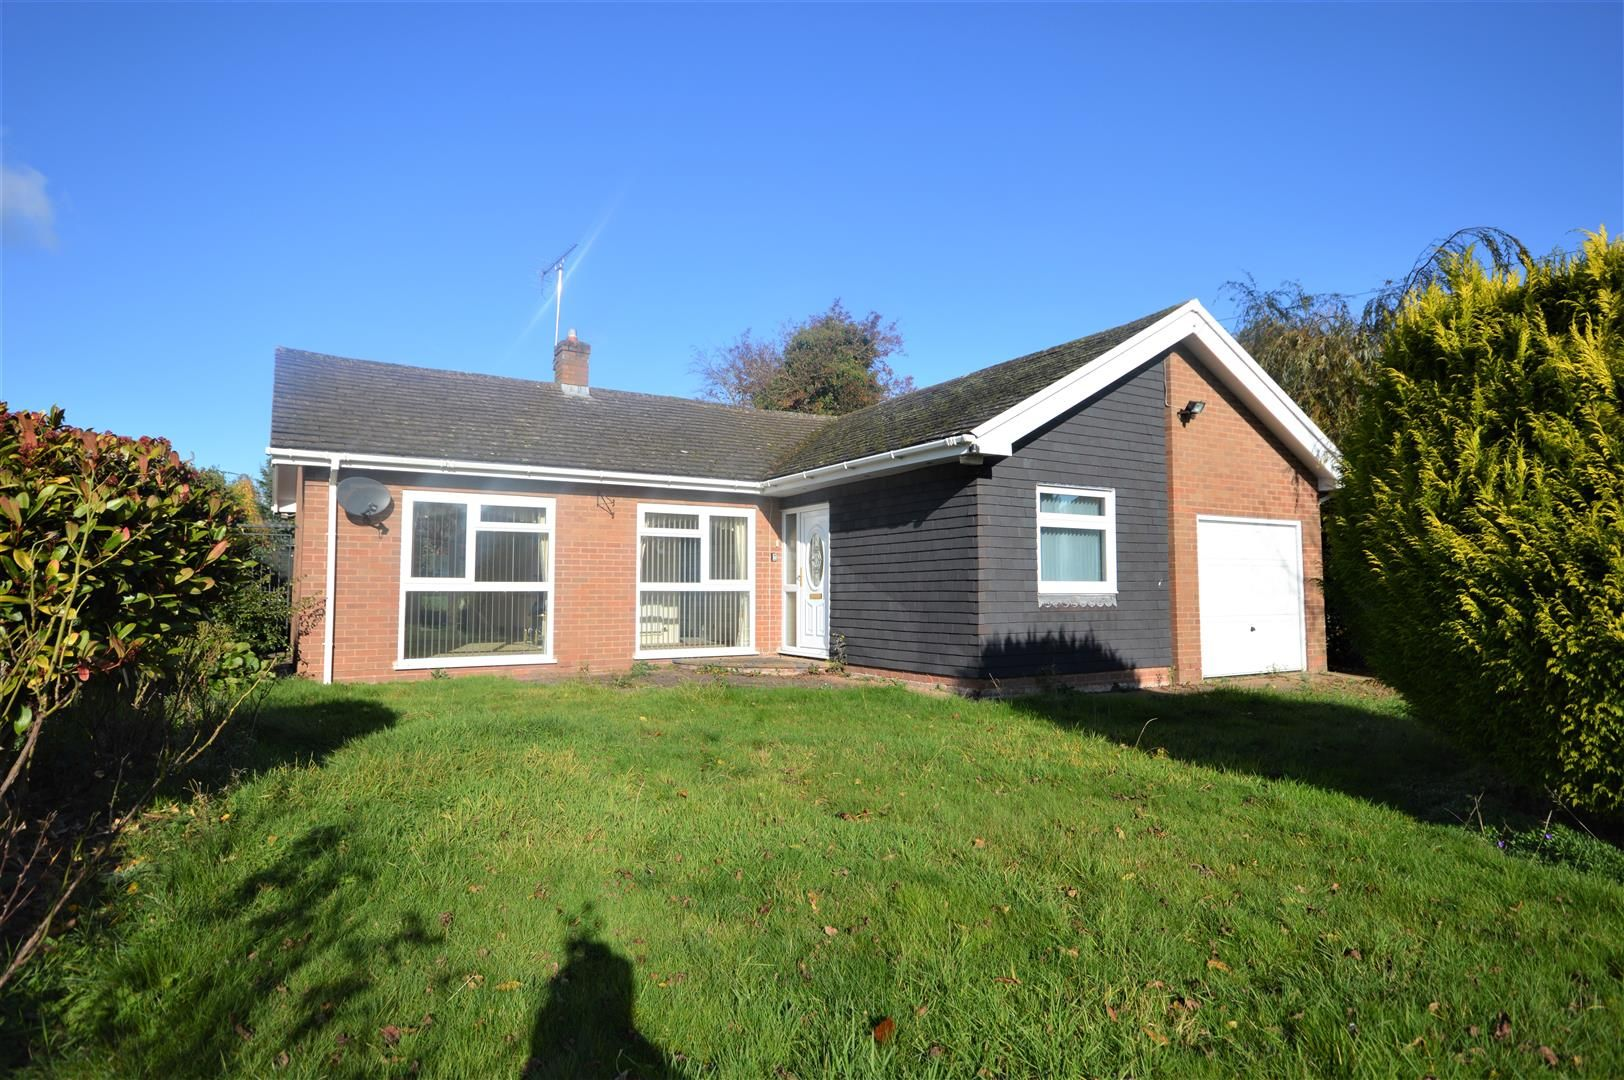 3 bed detached-bungalow for sale in Leominster 13